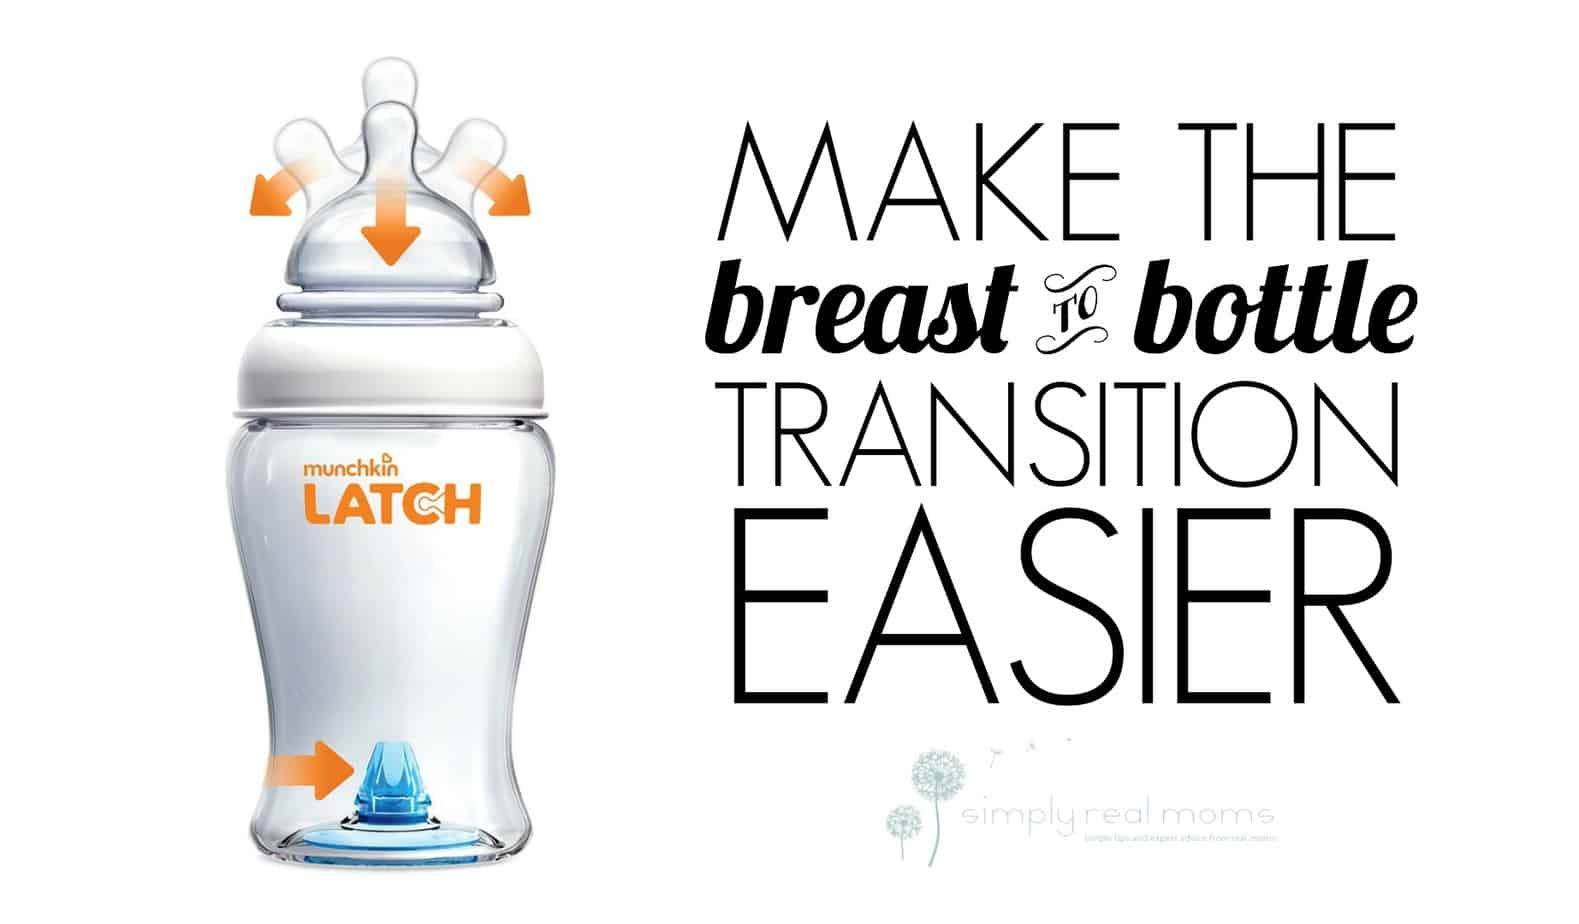 Munchkin LATCH Makes Breast to Bottle Transition Smooth 4